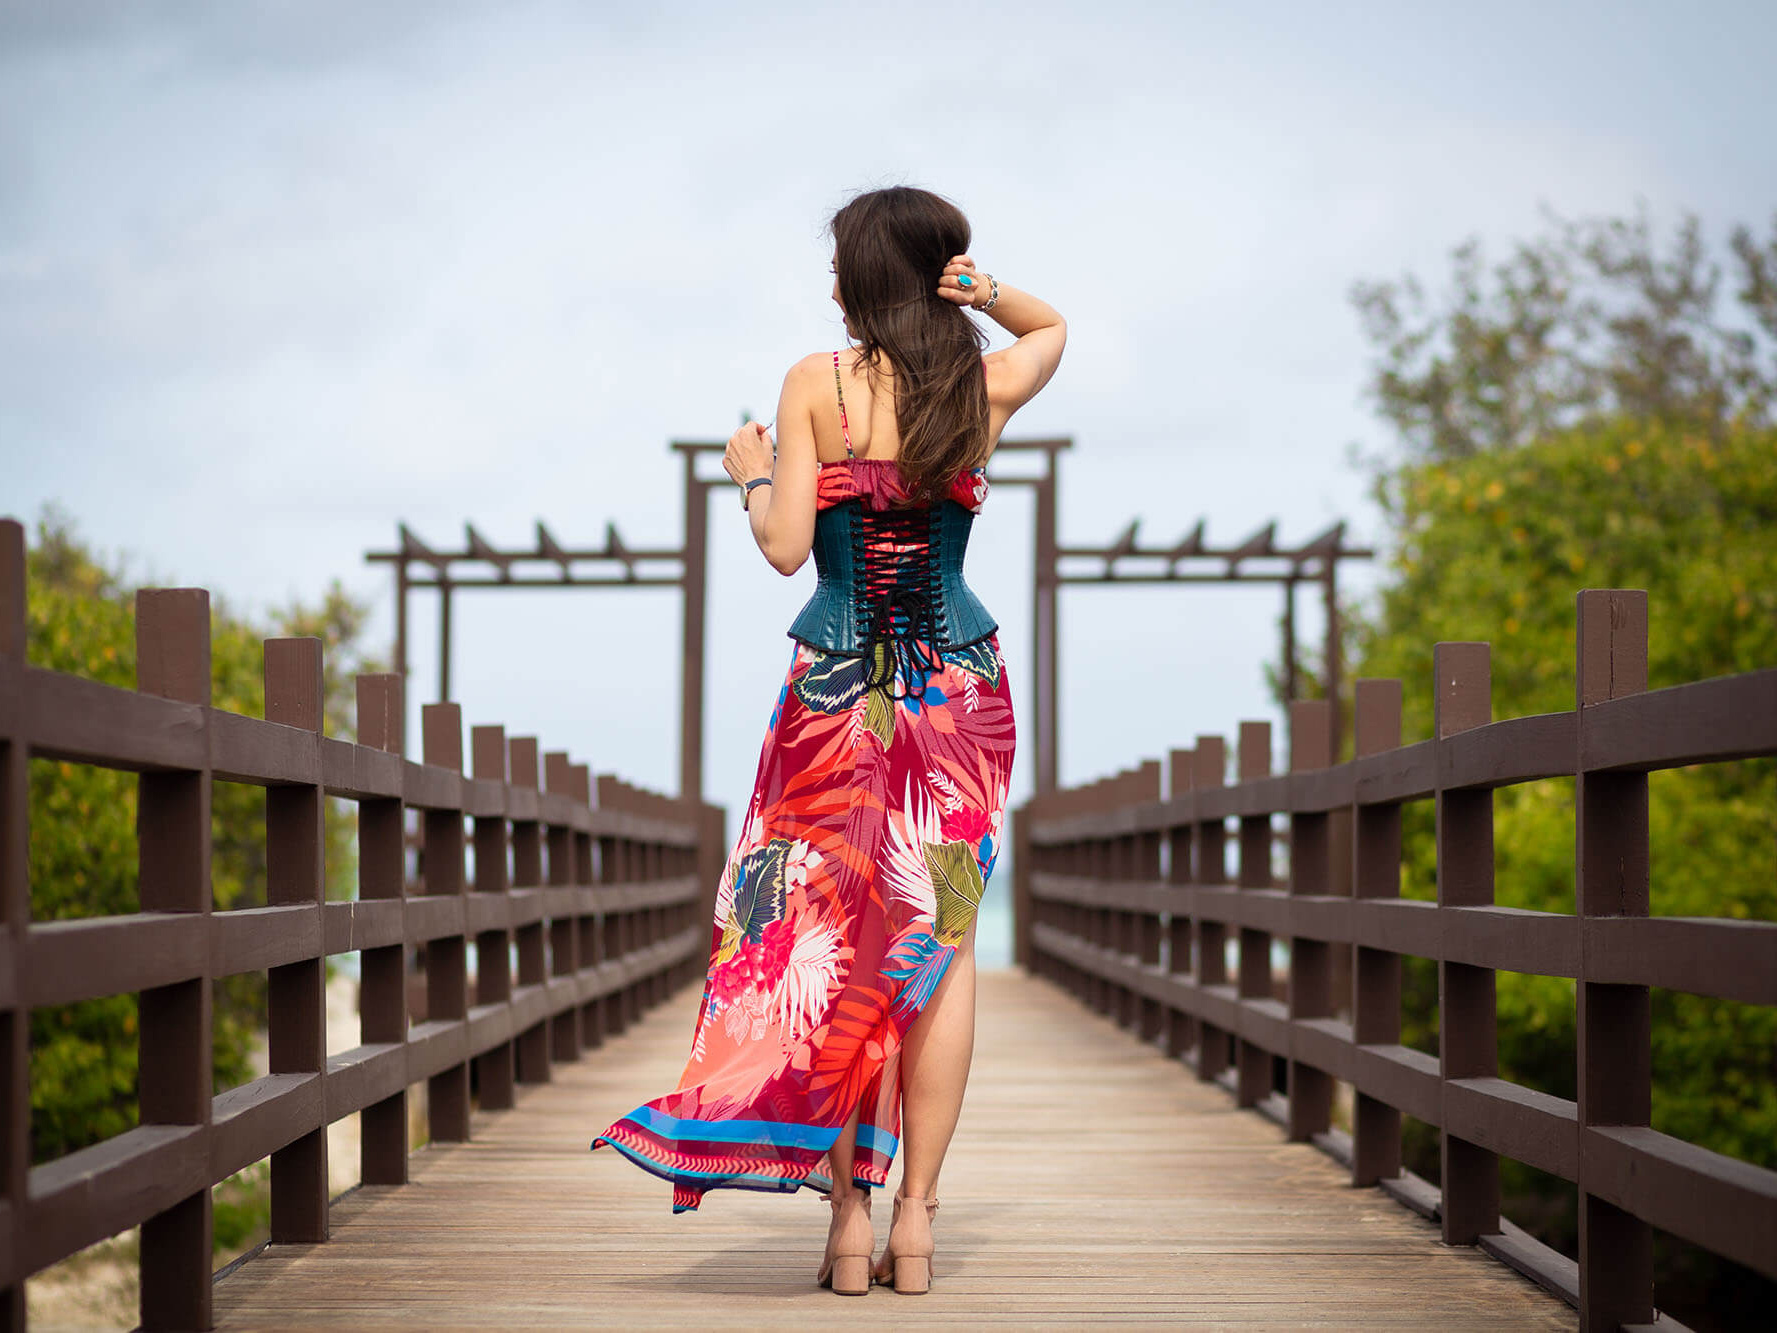 Back View of Stella in Teal Corset and Red Tropical Dress on Wooden Walkway